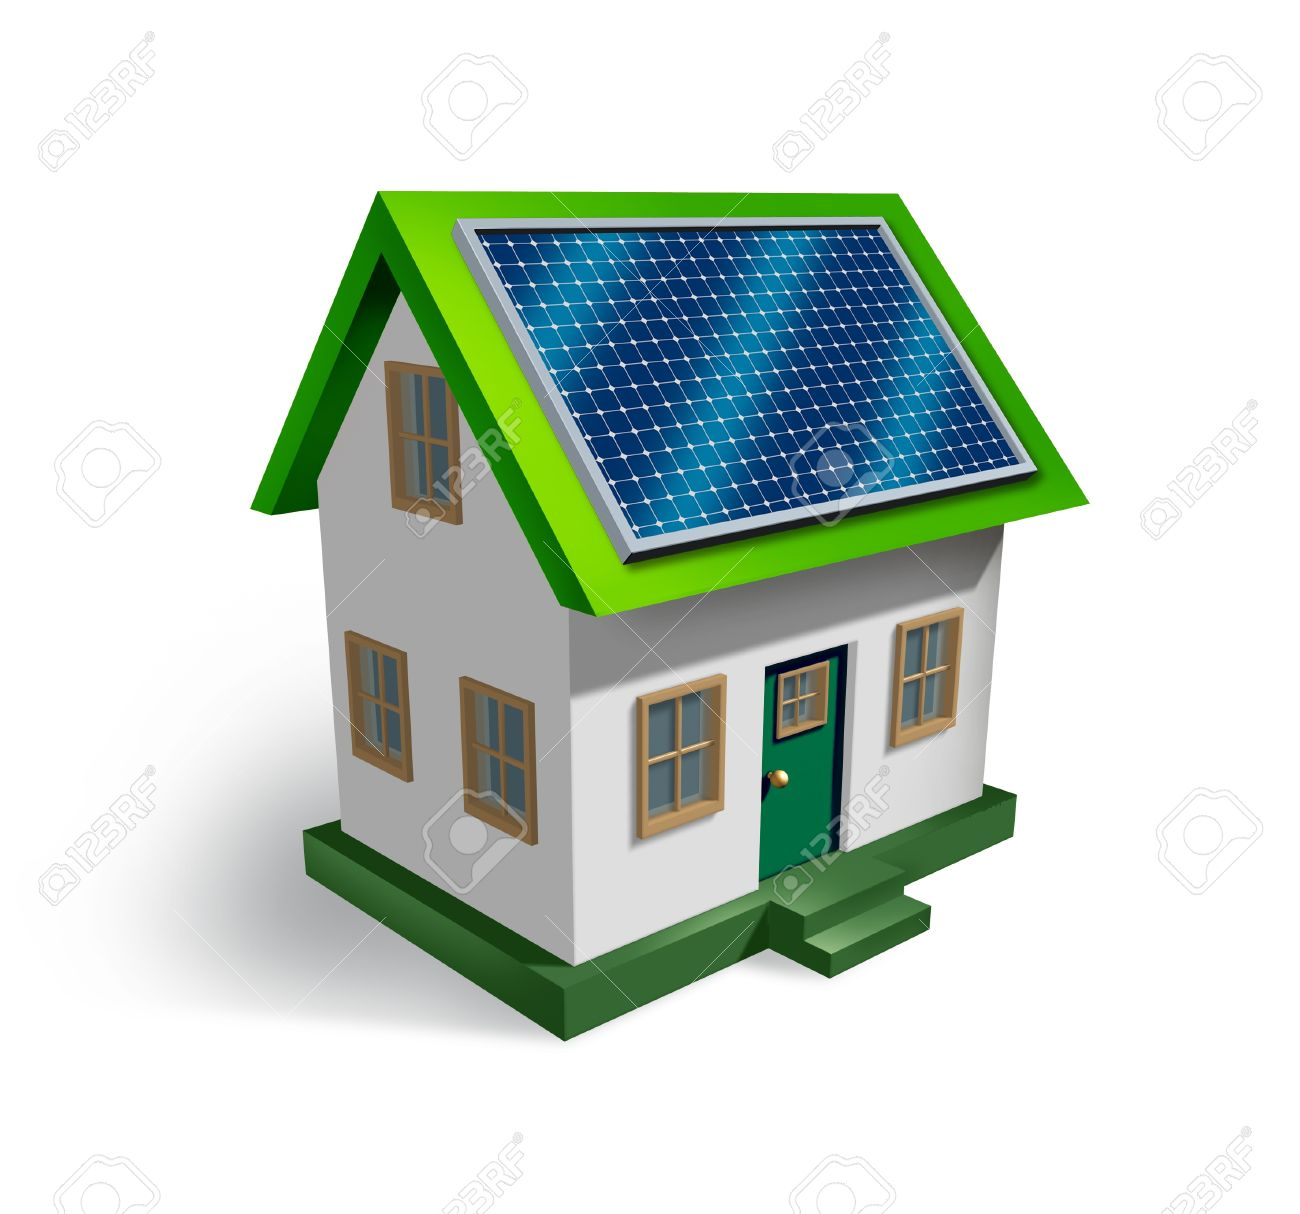 Solar energy house symbol on a white background as a residential icon of green renewable electricity from the sun being off the grid as money saving and ecological strategy Stock Photo - 14345361